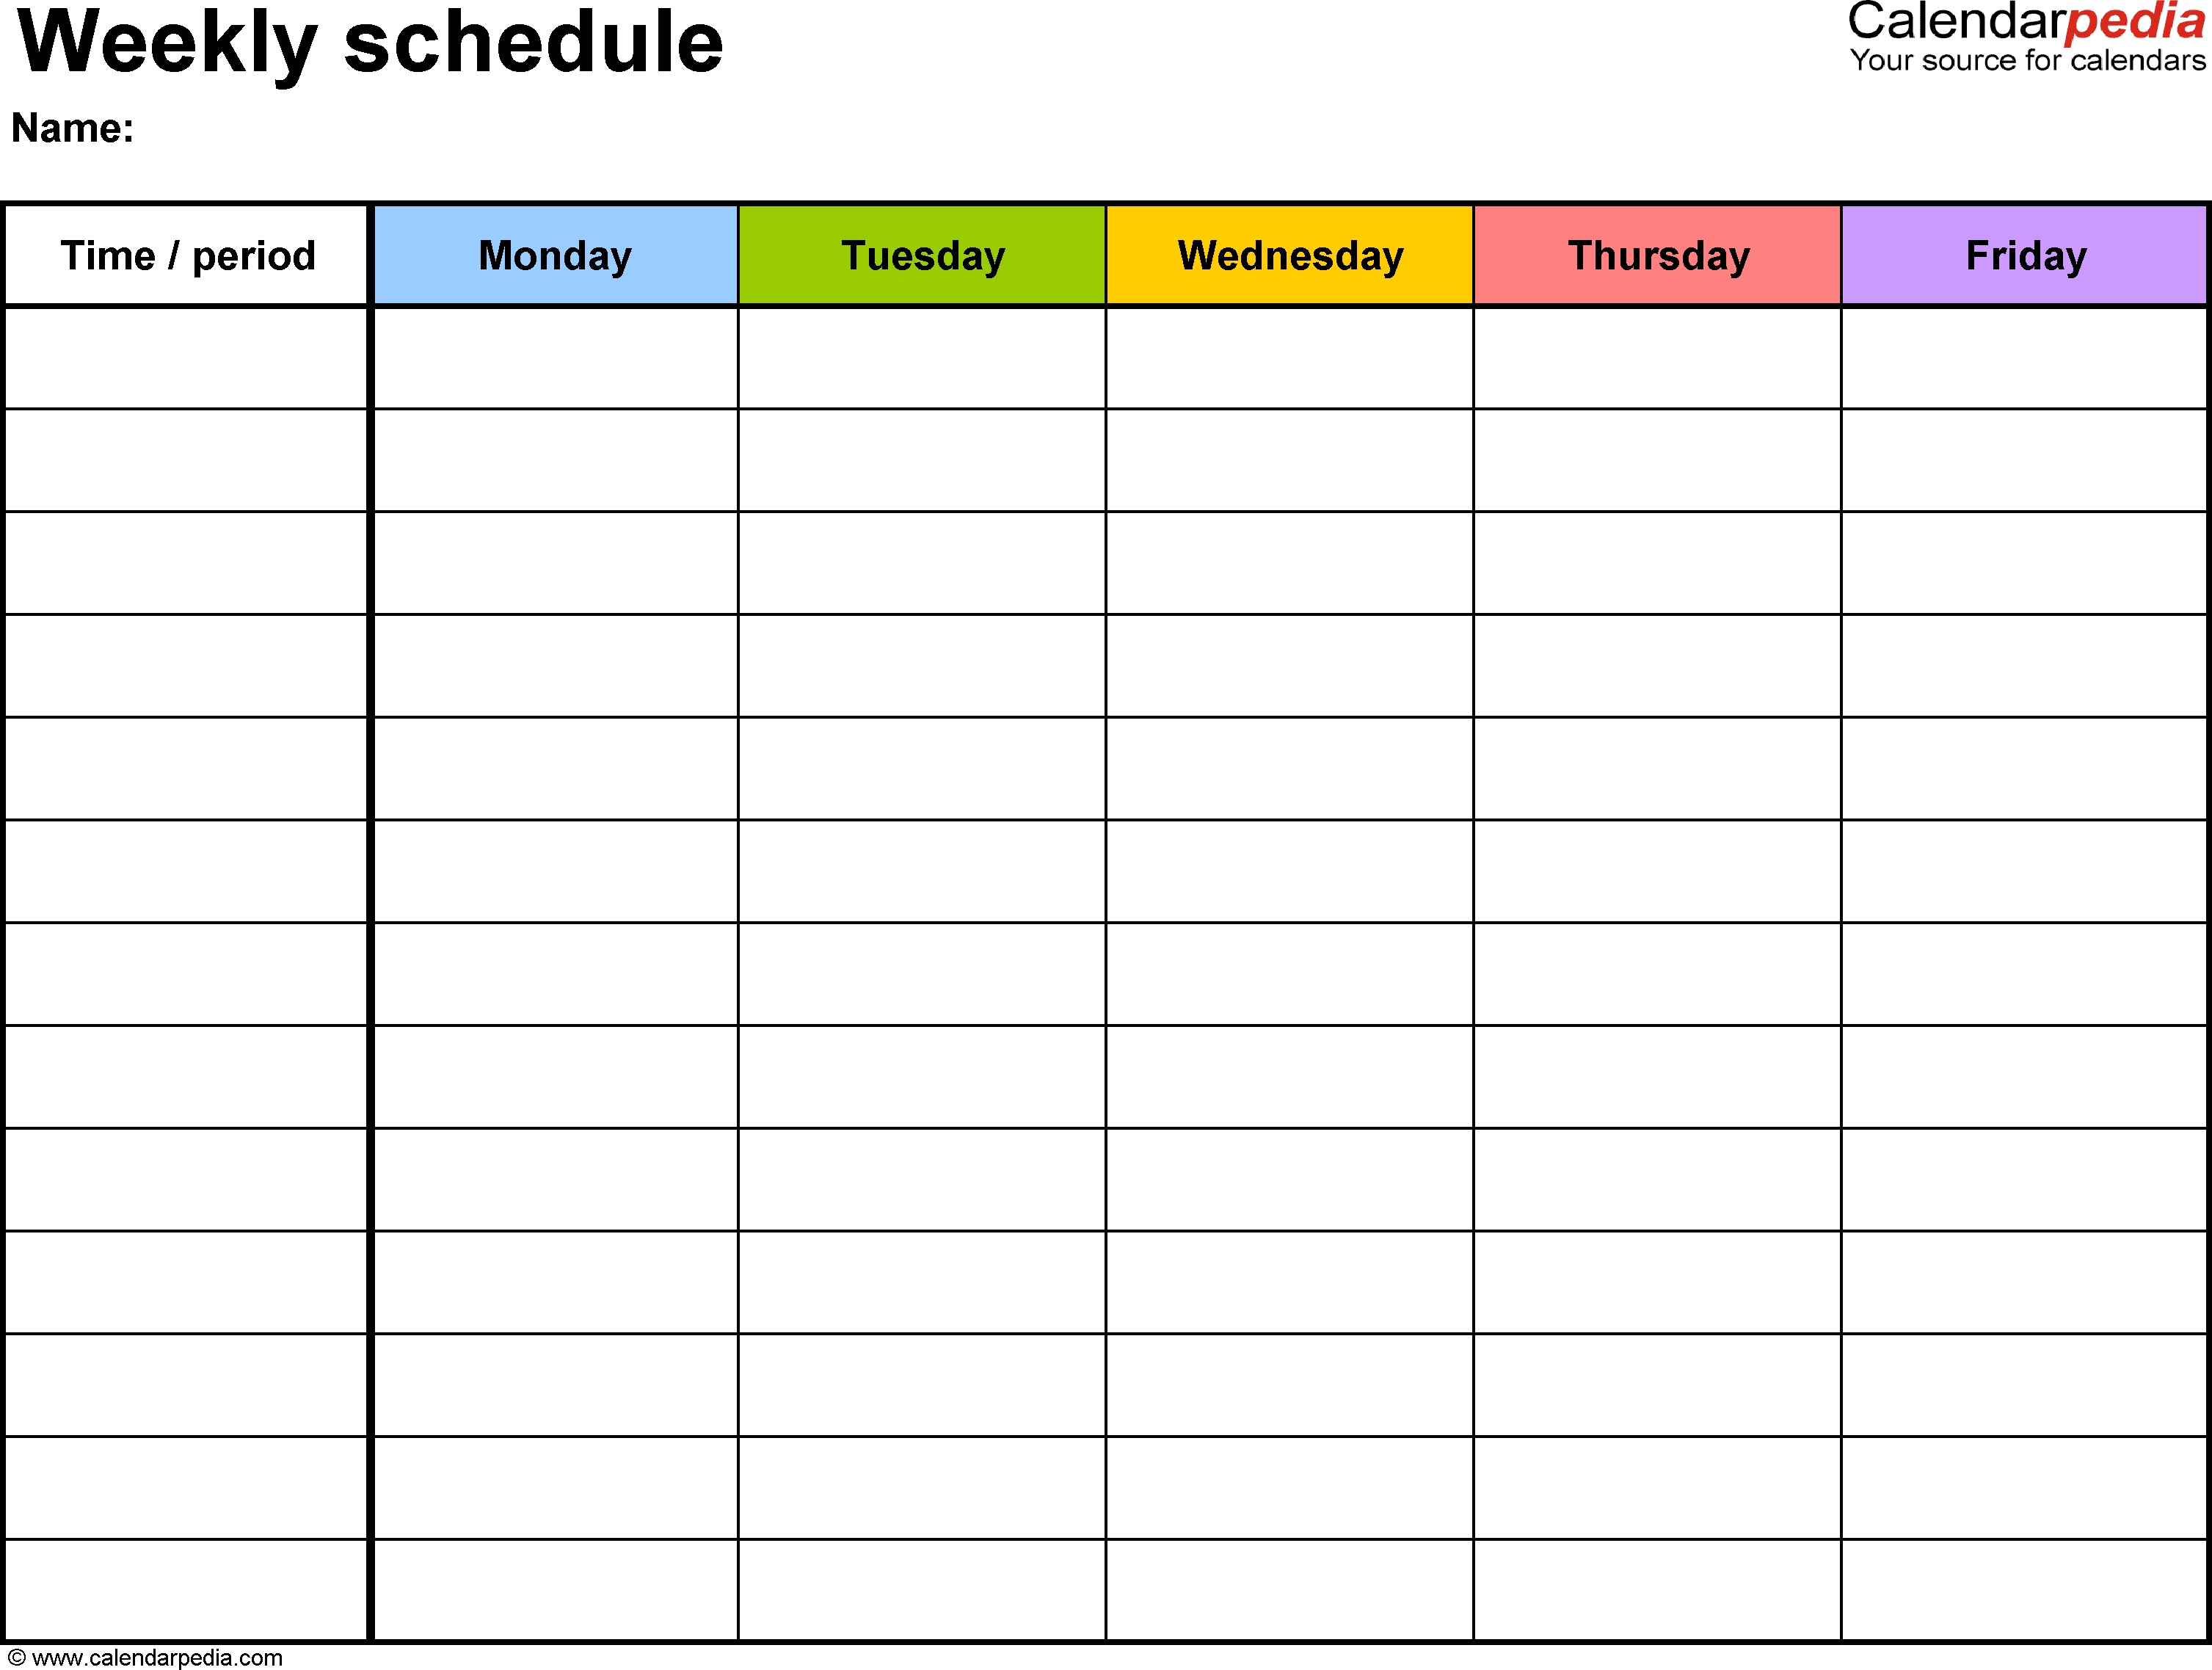 Free Weekly Schedule Templates For Excel - 18 Templates with Printable Blank 12 Week Calendar Template